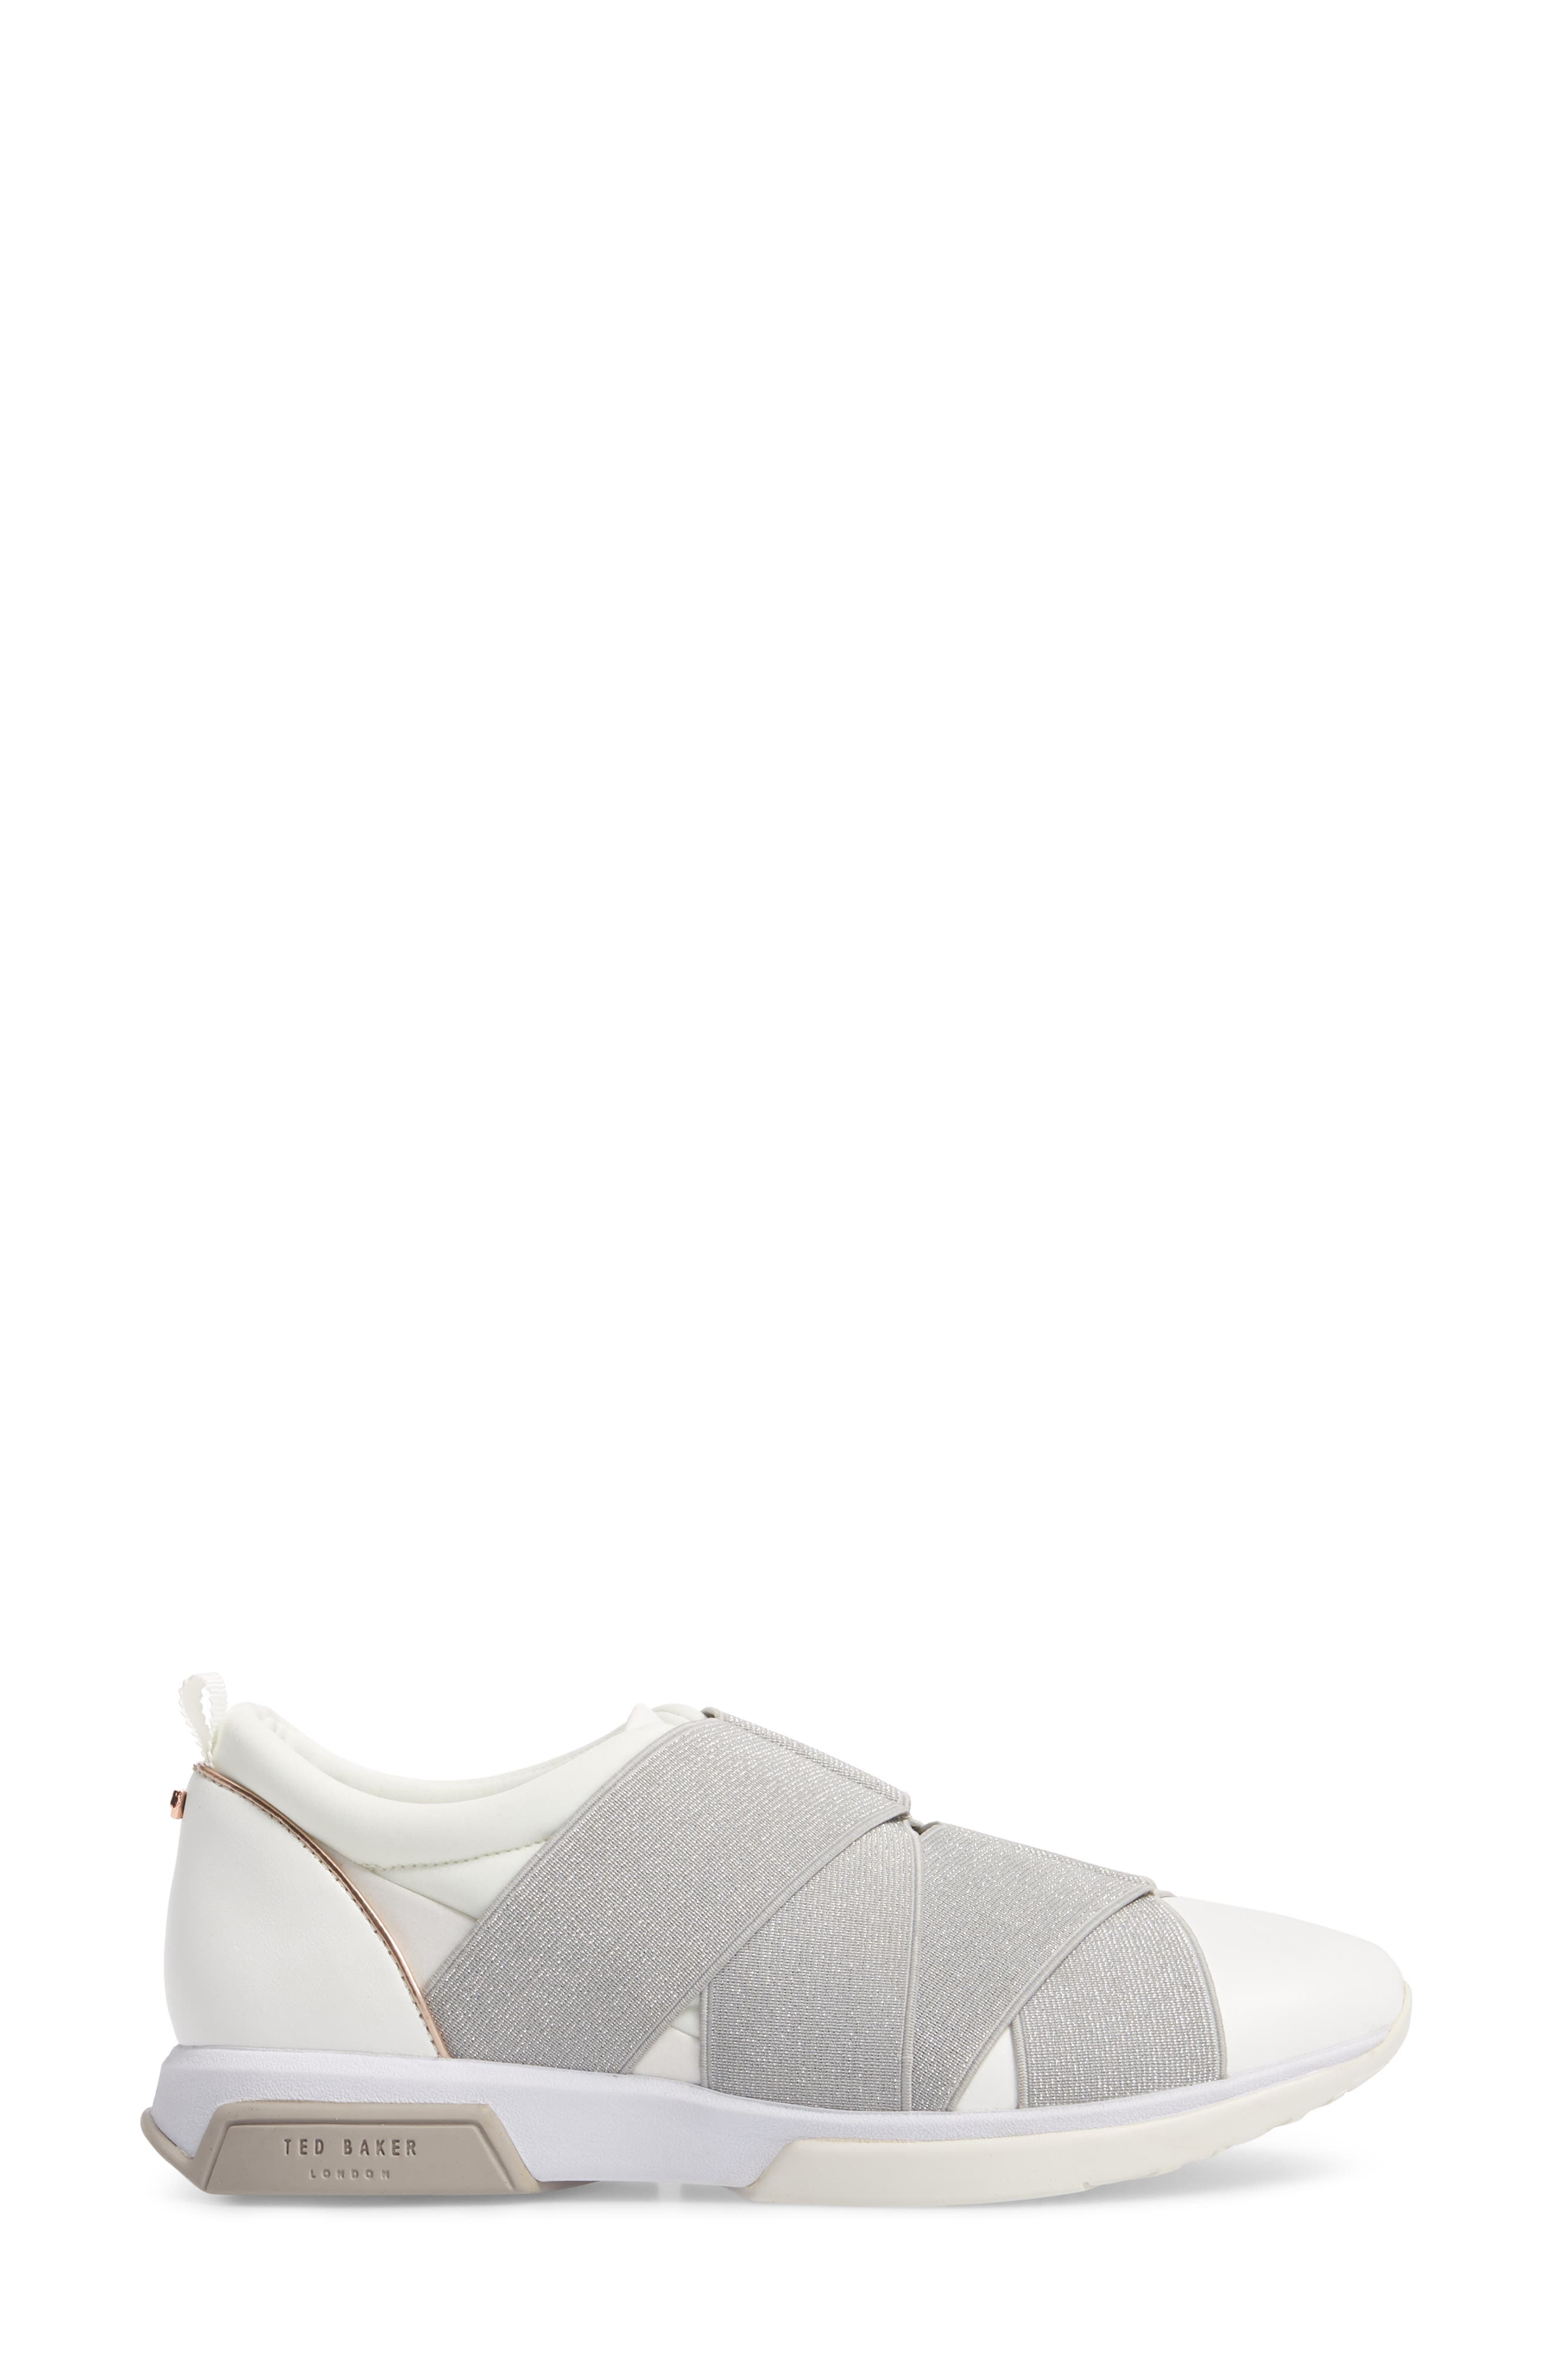 Queane Sneaker,                             Alternate thumbnail 3, color,                             WHITE/ SILVER LEATHER